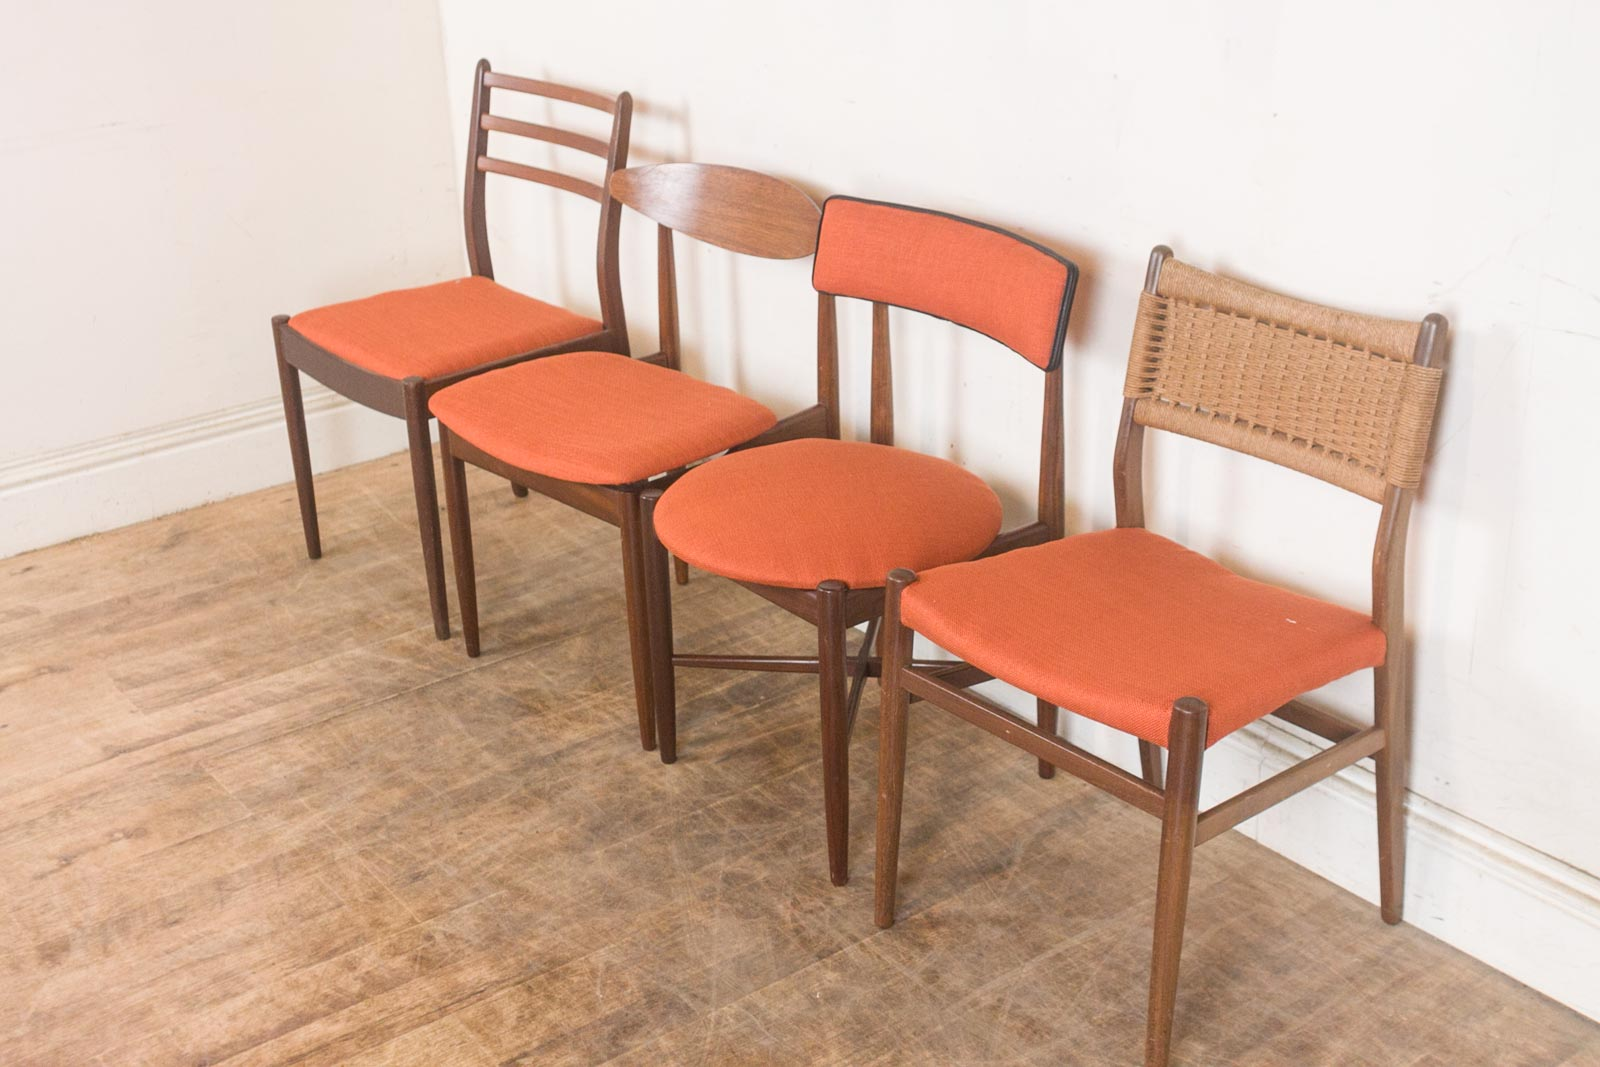 Vintage Retro G Plan Teak Oval Dining Table and 4 Mixed G  : hV040613 10 from www.ebay.co.uk size 1600 x 1067 jpeg 197kB